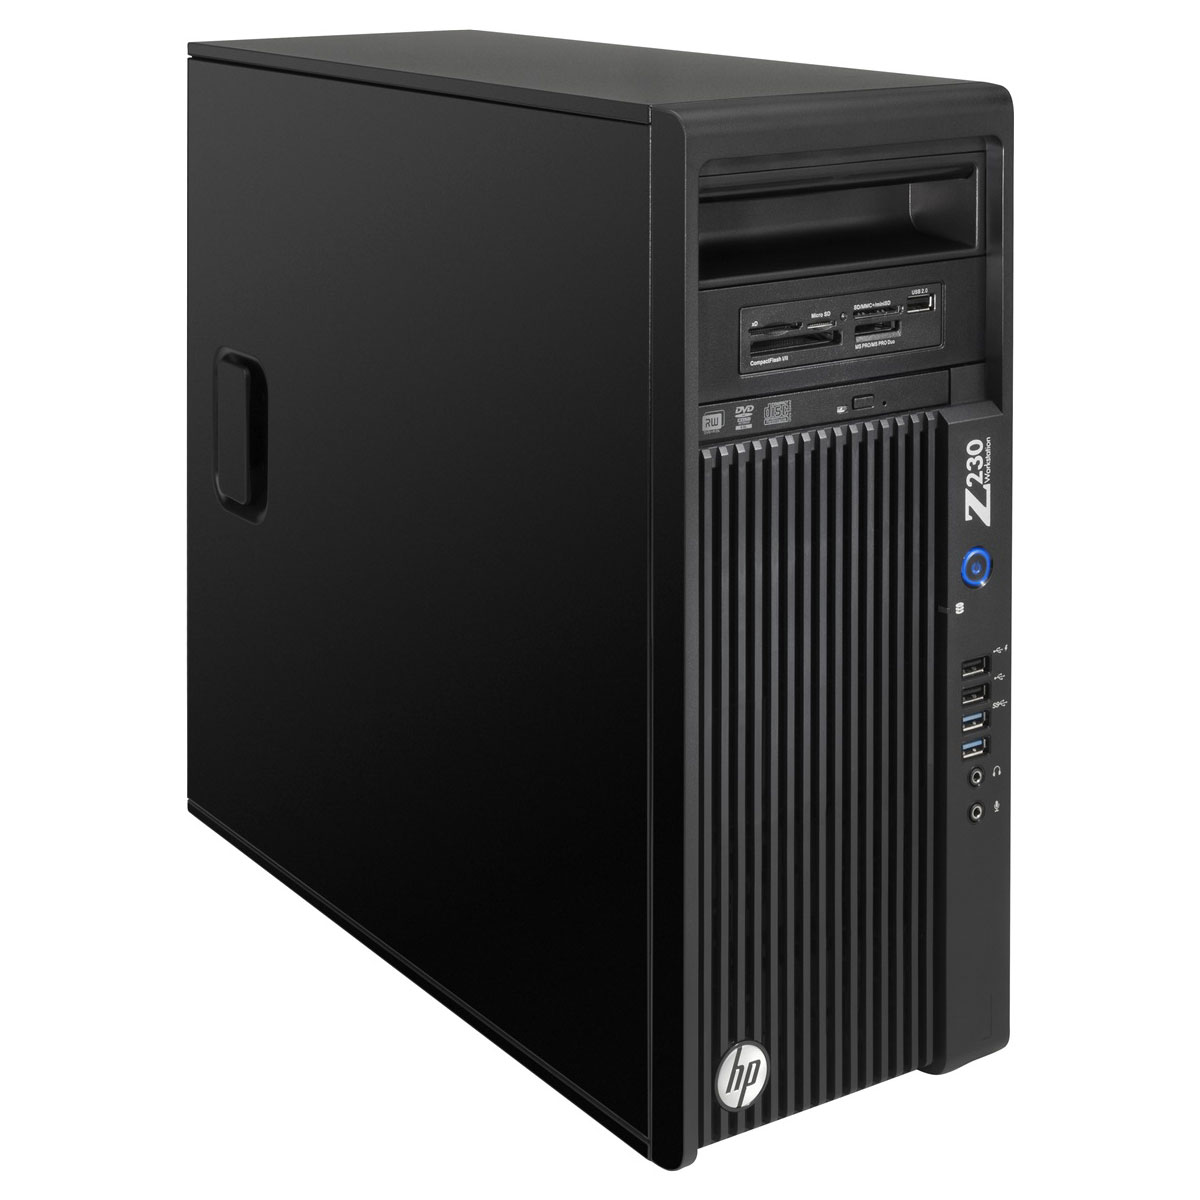 Hp z230 g1x32et pc de bureau hp sur - Ordinateur de bureau hp intel core i7 ...